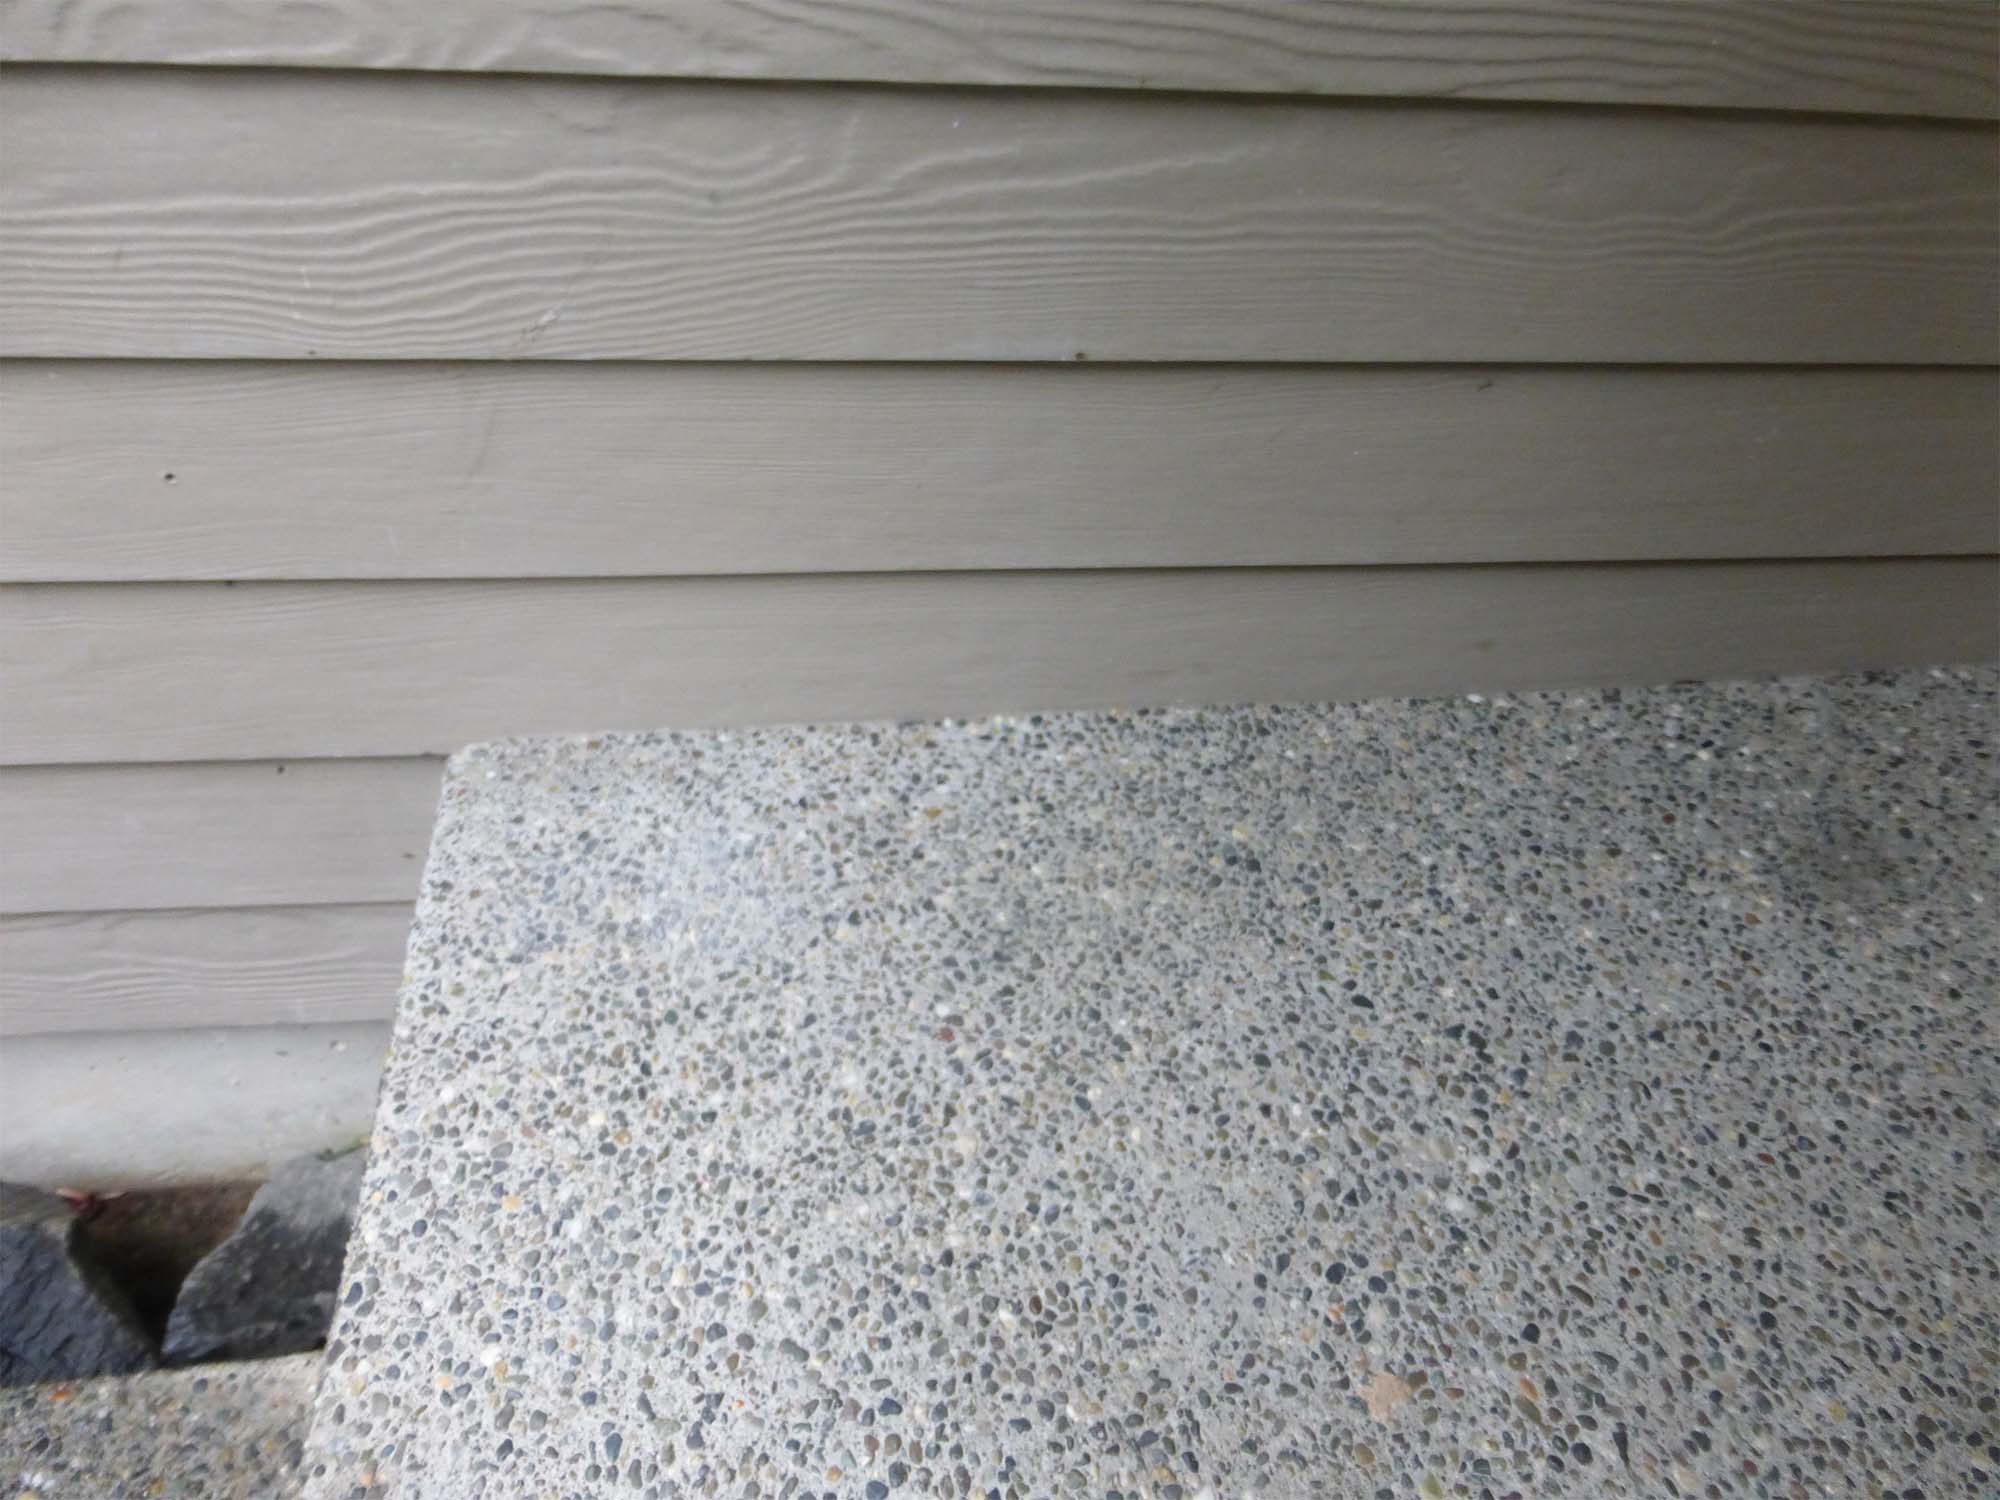 worst problem with hardie siding clearance issues with fiber cement siding